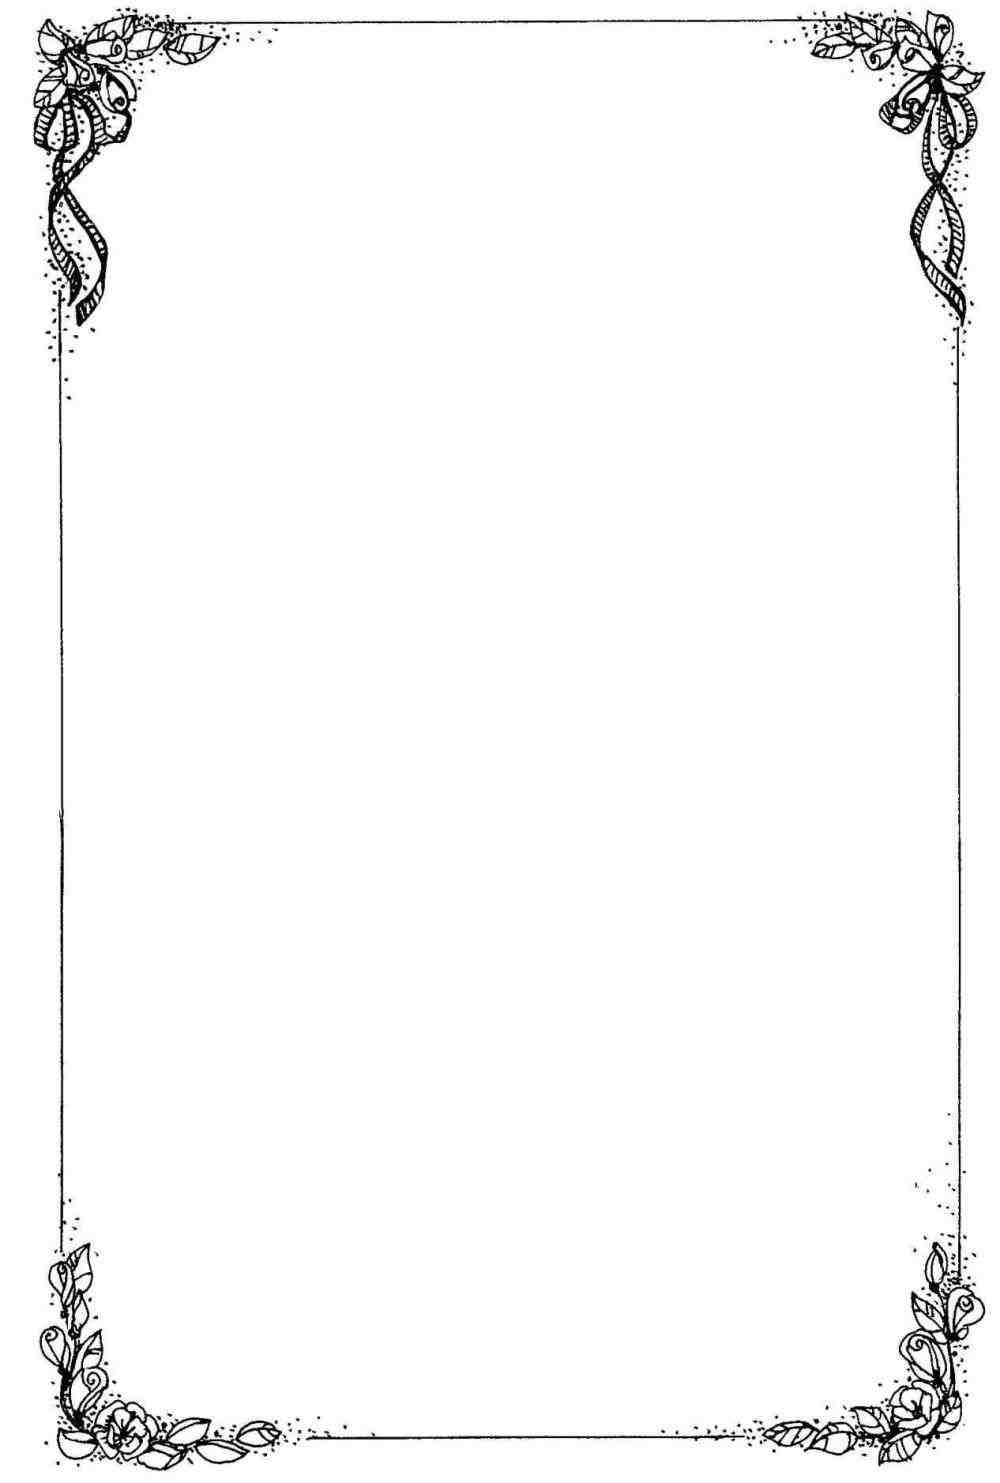 christmas letter border black and white